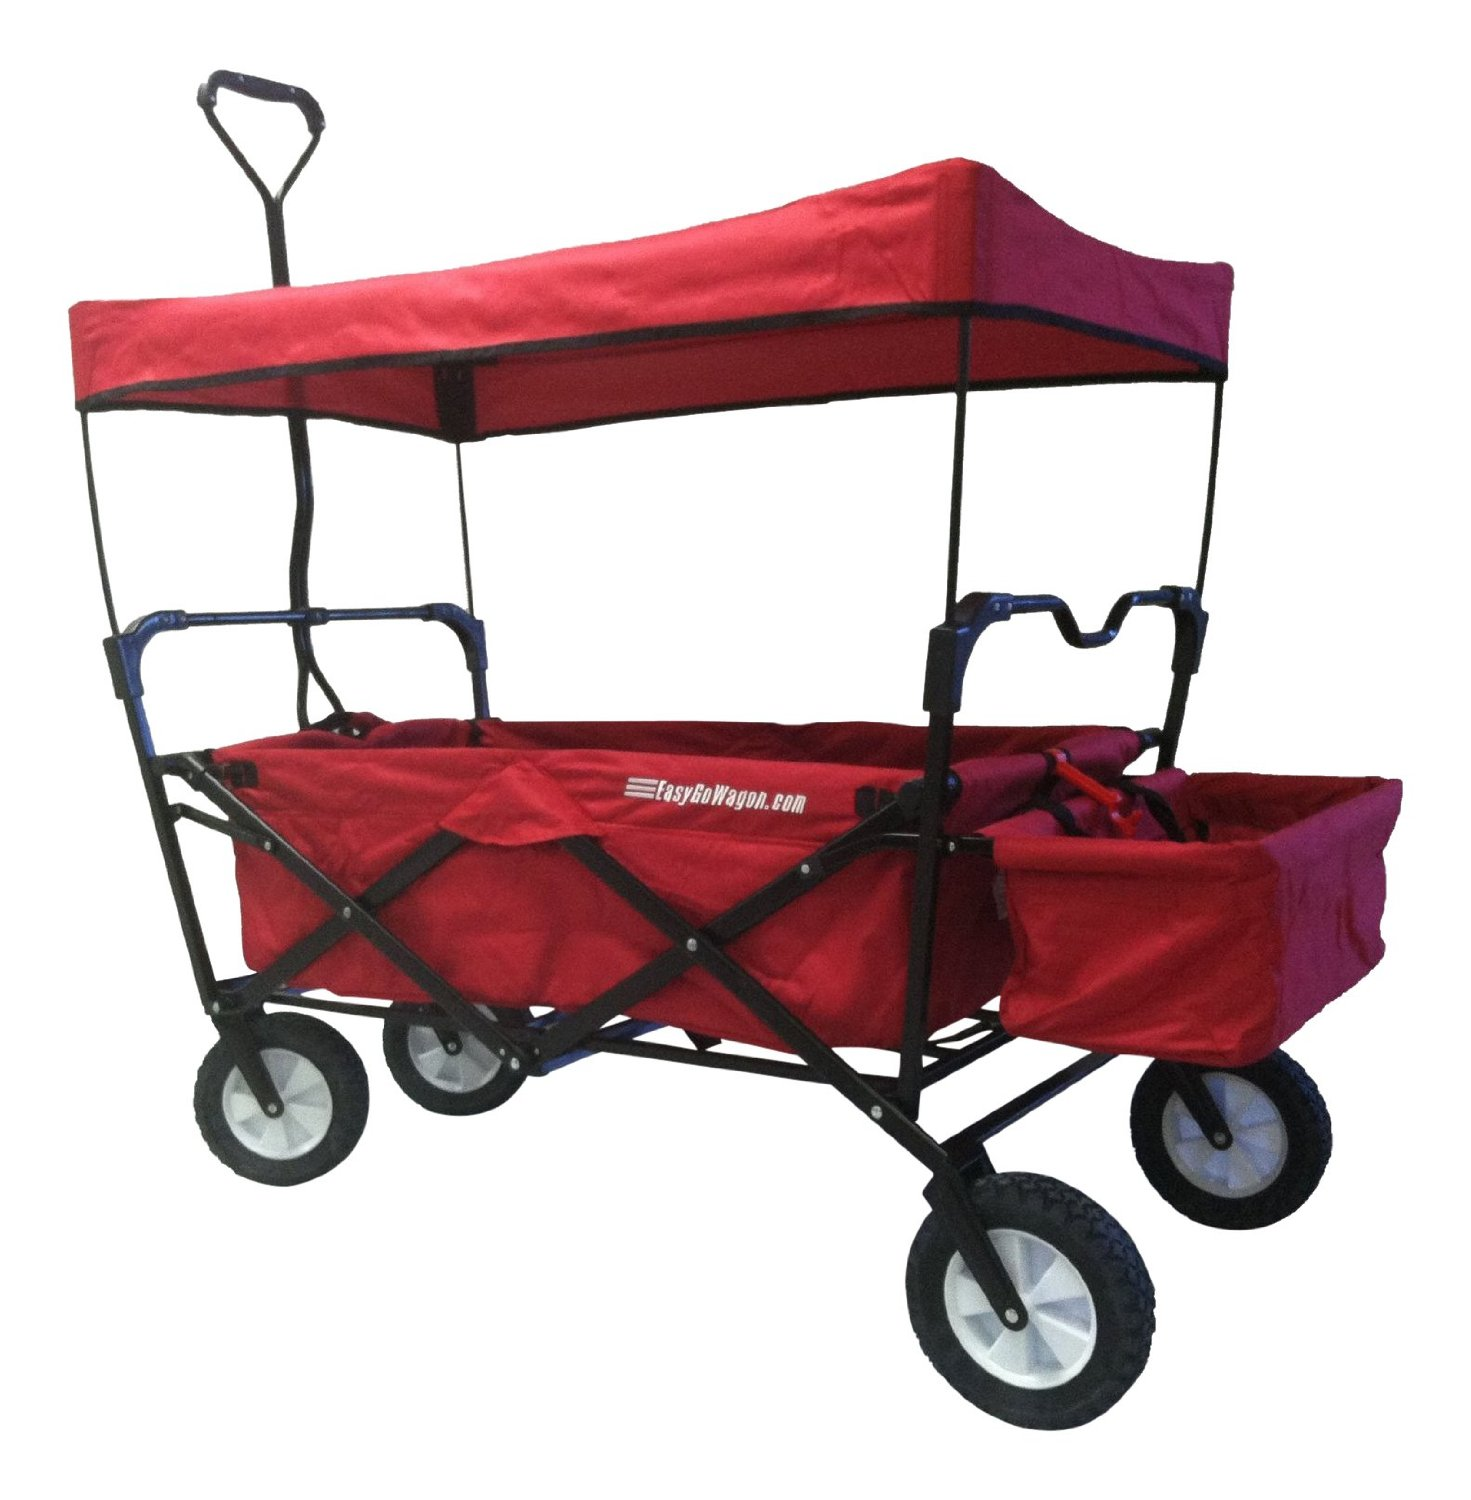 Top 10 Folding Wagons Best Reviews For Your Choice 2019